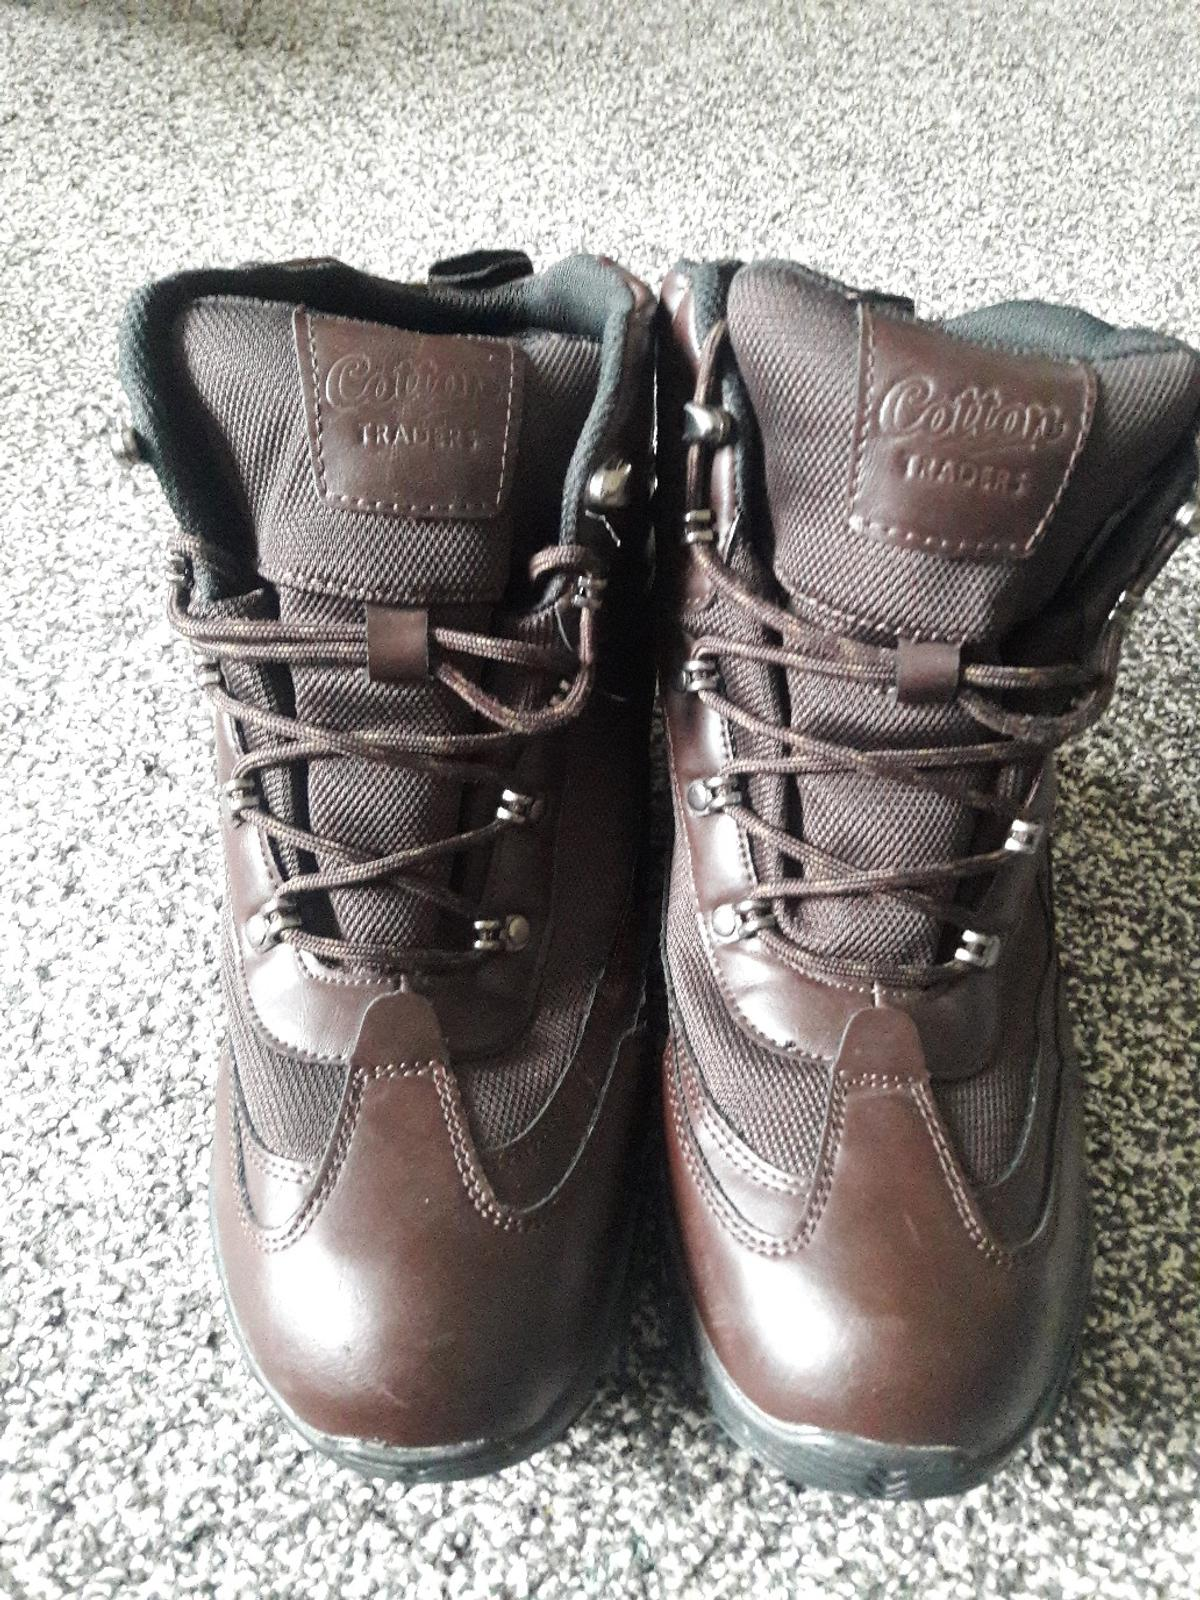 3b031dd4cfe mens cotton traders boots new